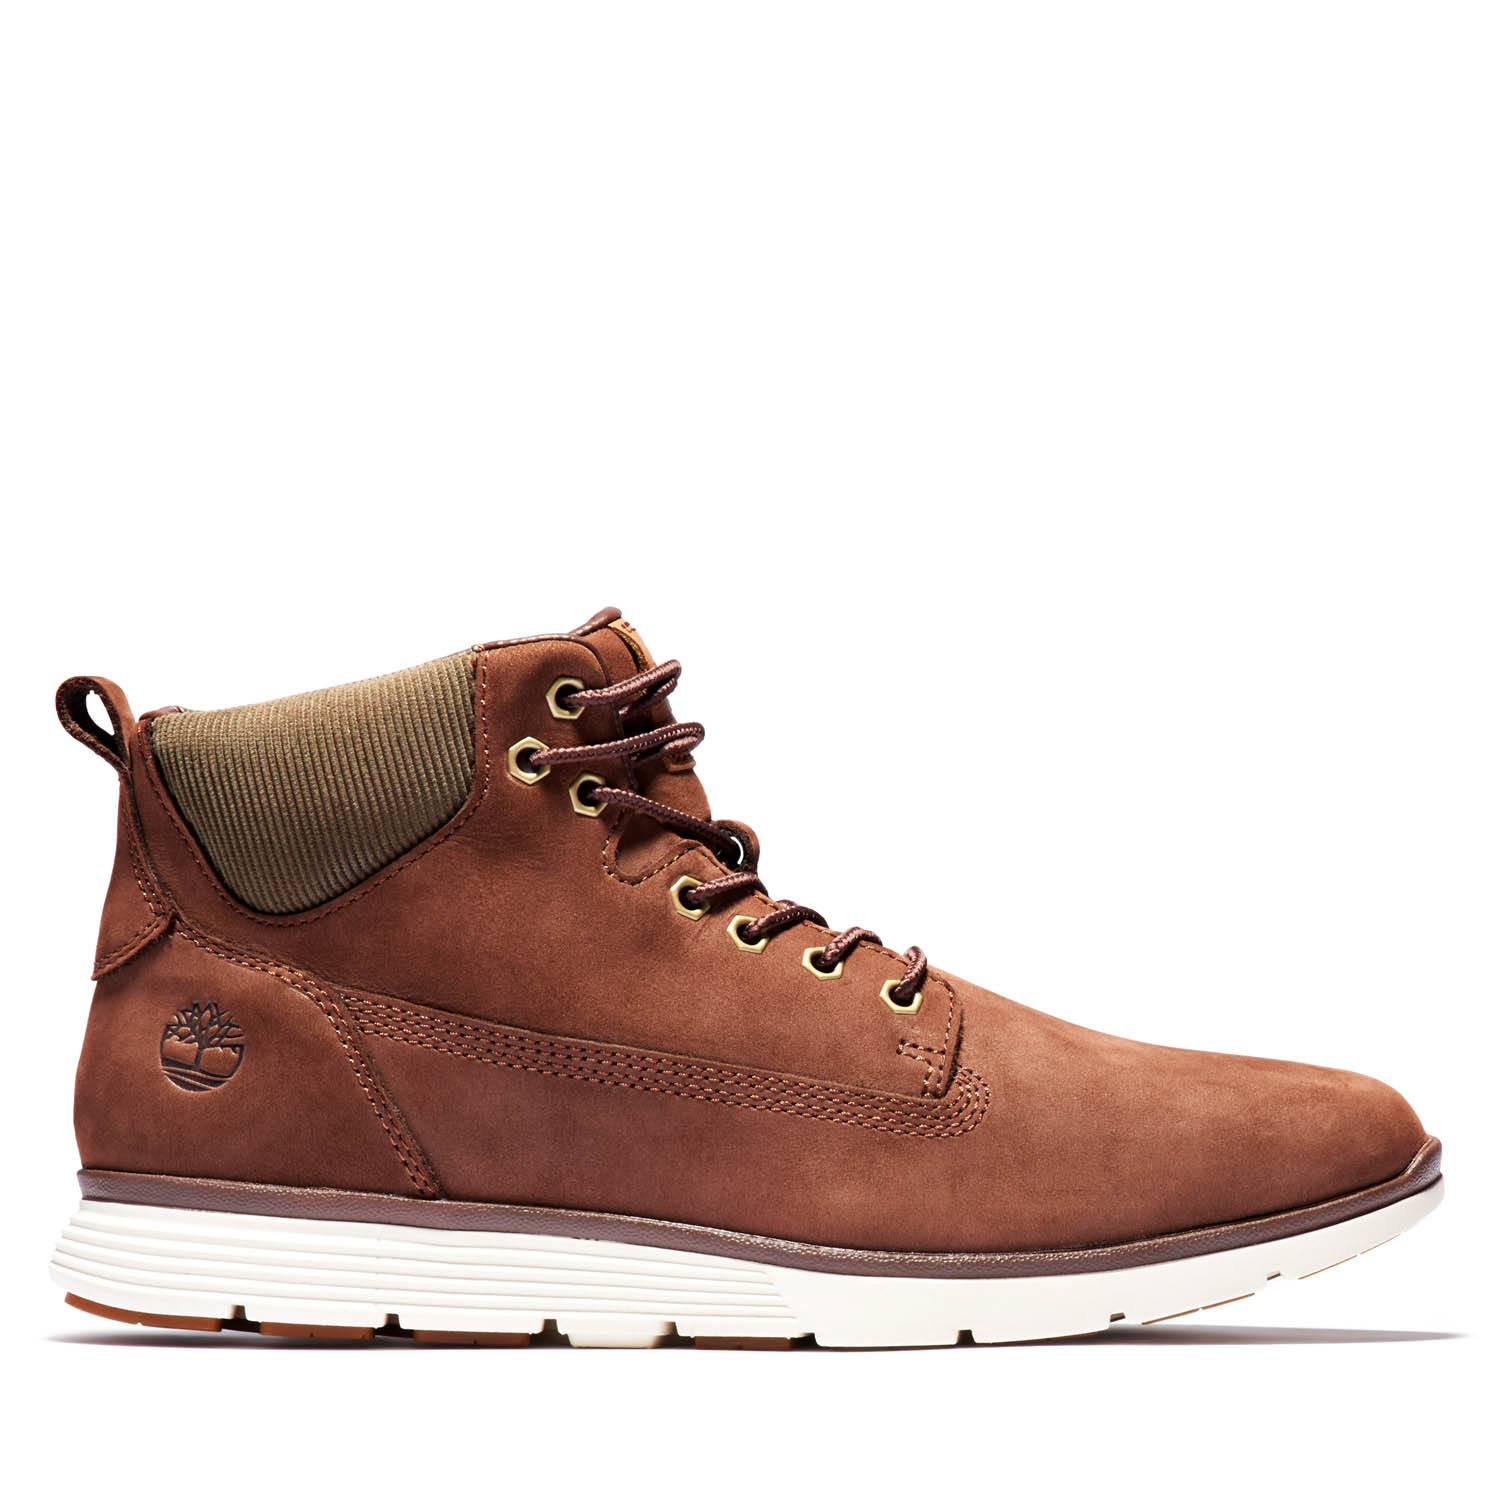 Killington Chukka Timberland marron